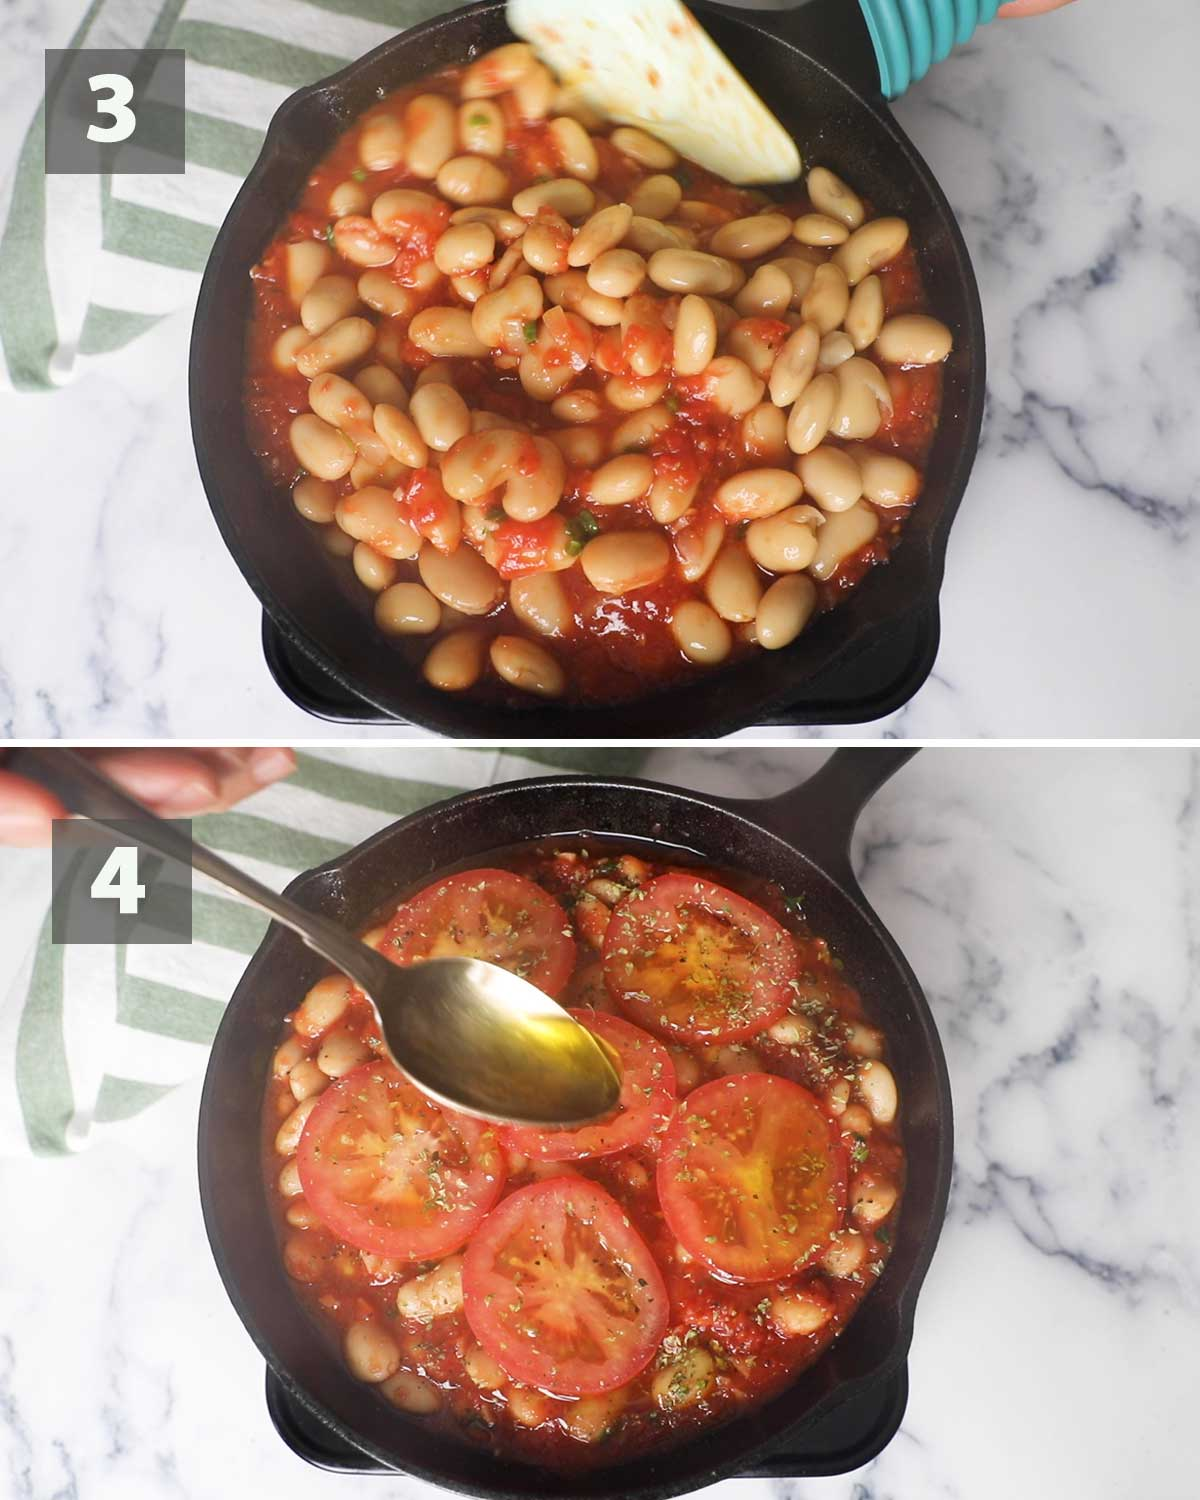 Second part of a collage of images showing the step by step process on how to prepare Giant Baked Beans.